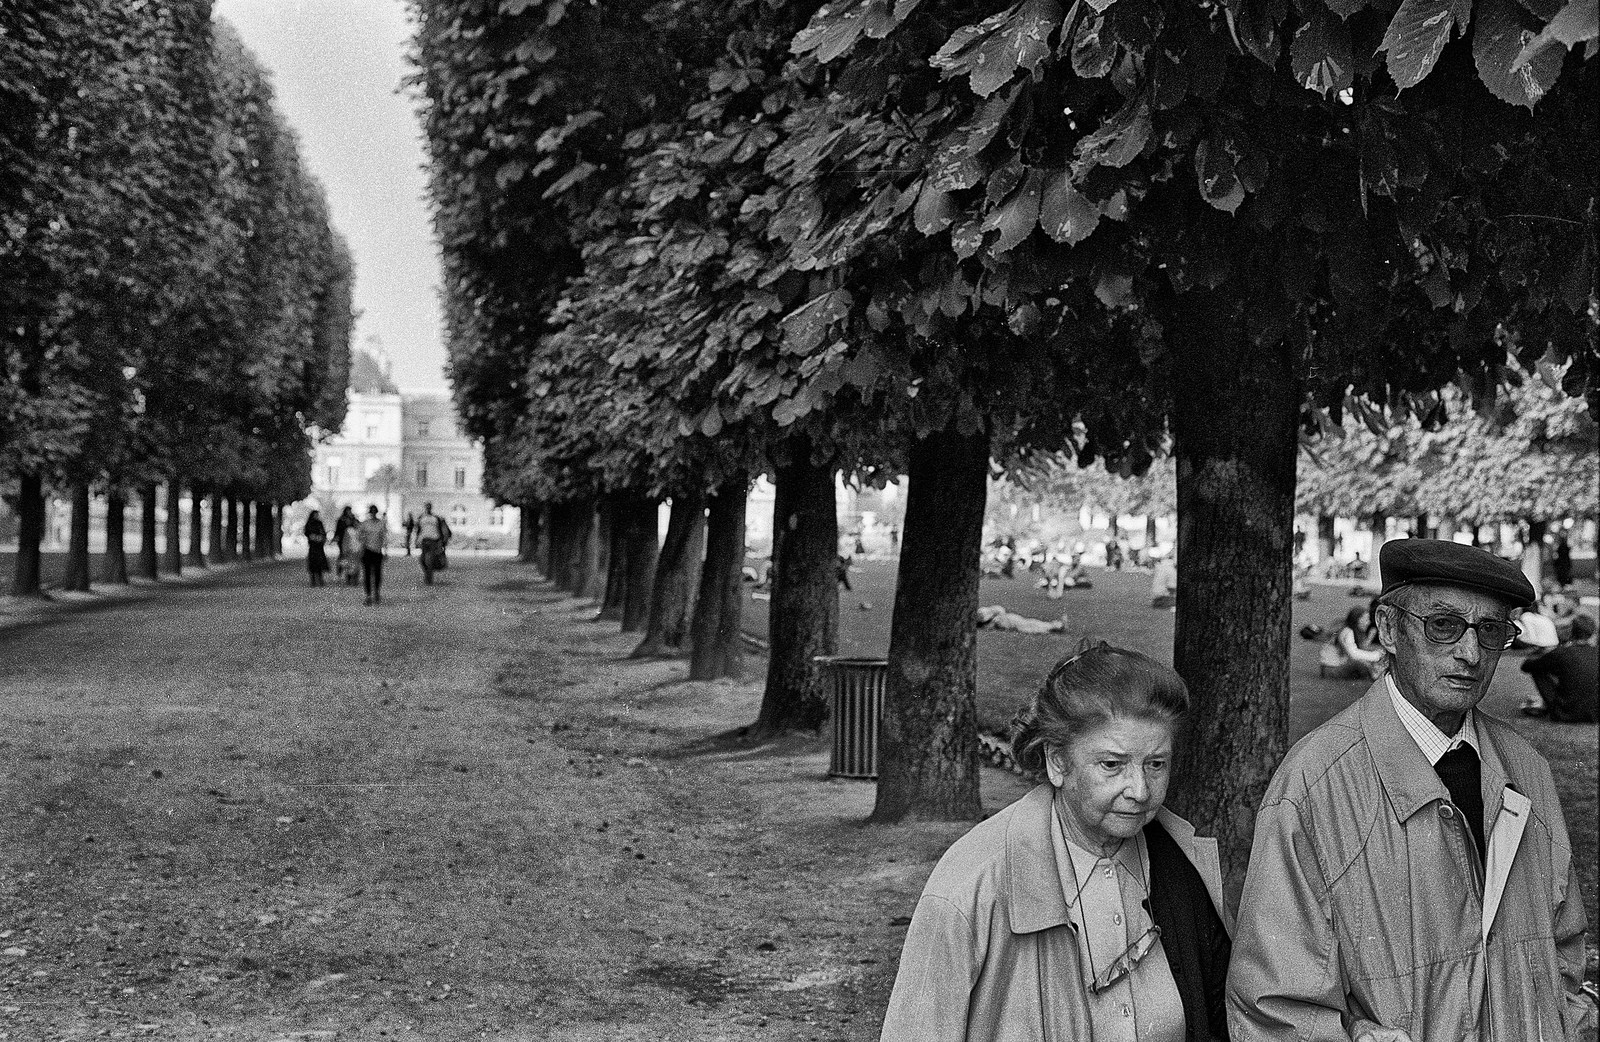 An elderly couple on a walk in Paris, 2004. Nikon F3HP, Nikkor 50mm f/1.8.